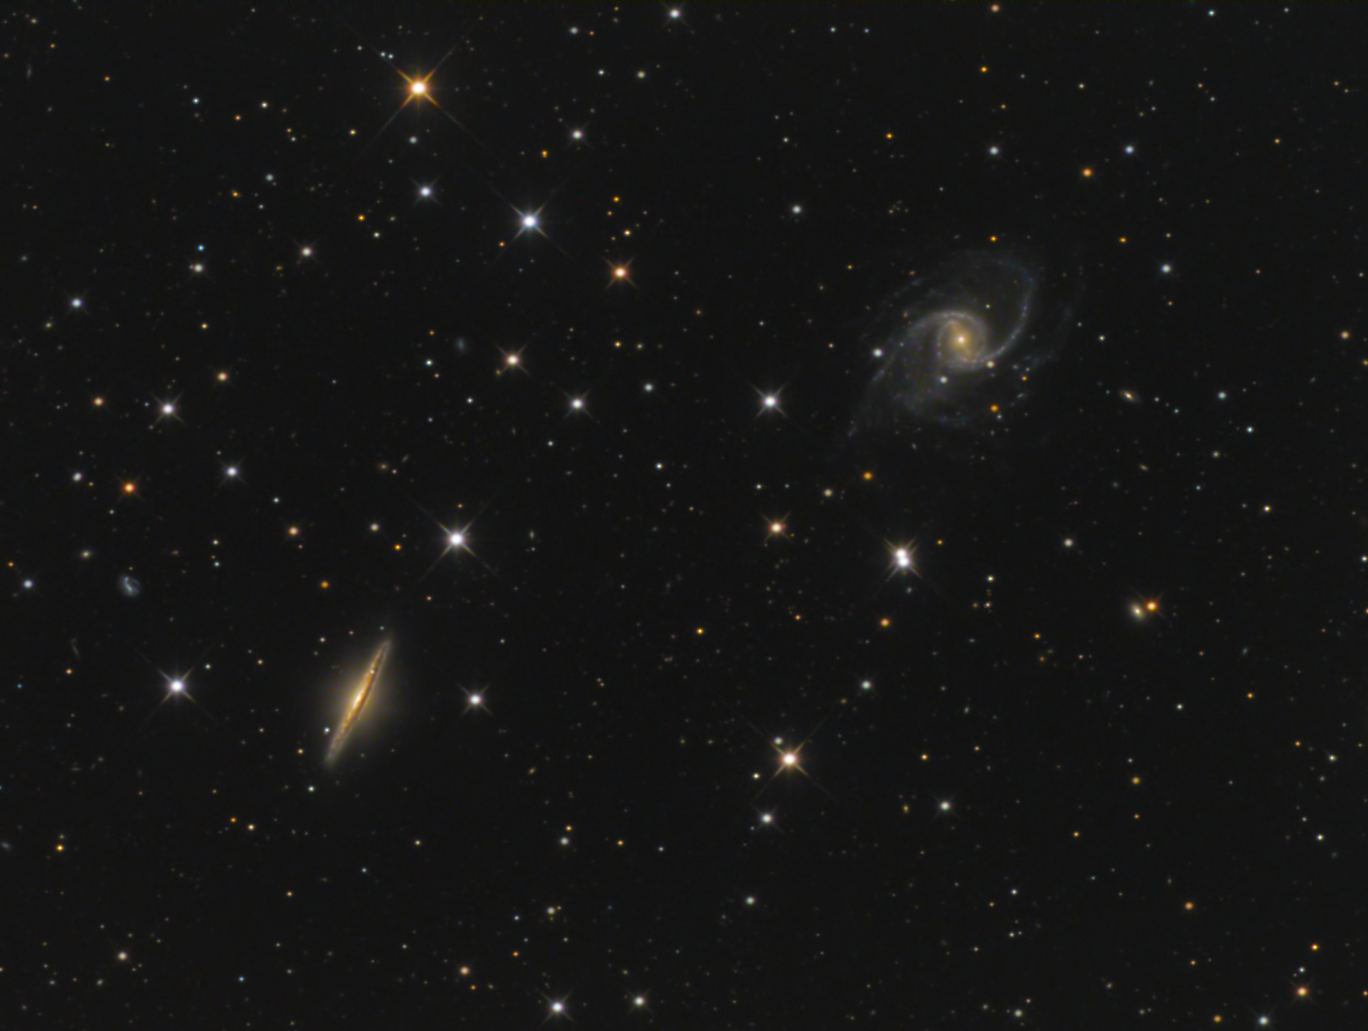 751975977_NGC5905_2.png.aa7ec14efb6ddfcadabe7ed551badc68.png